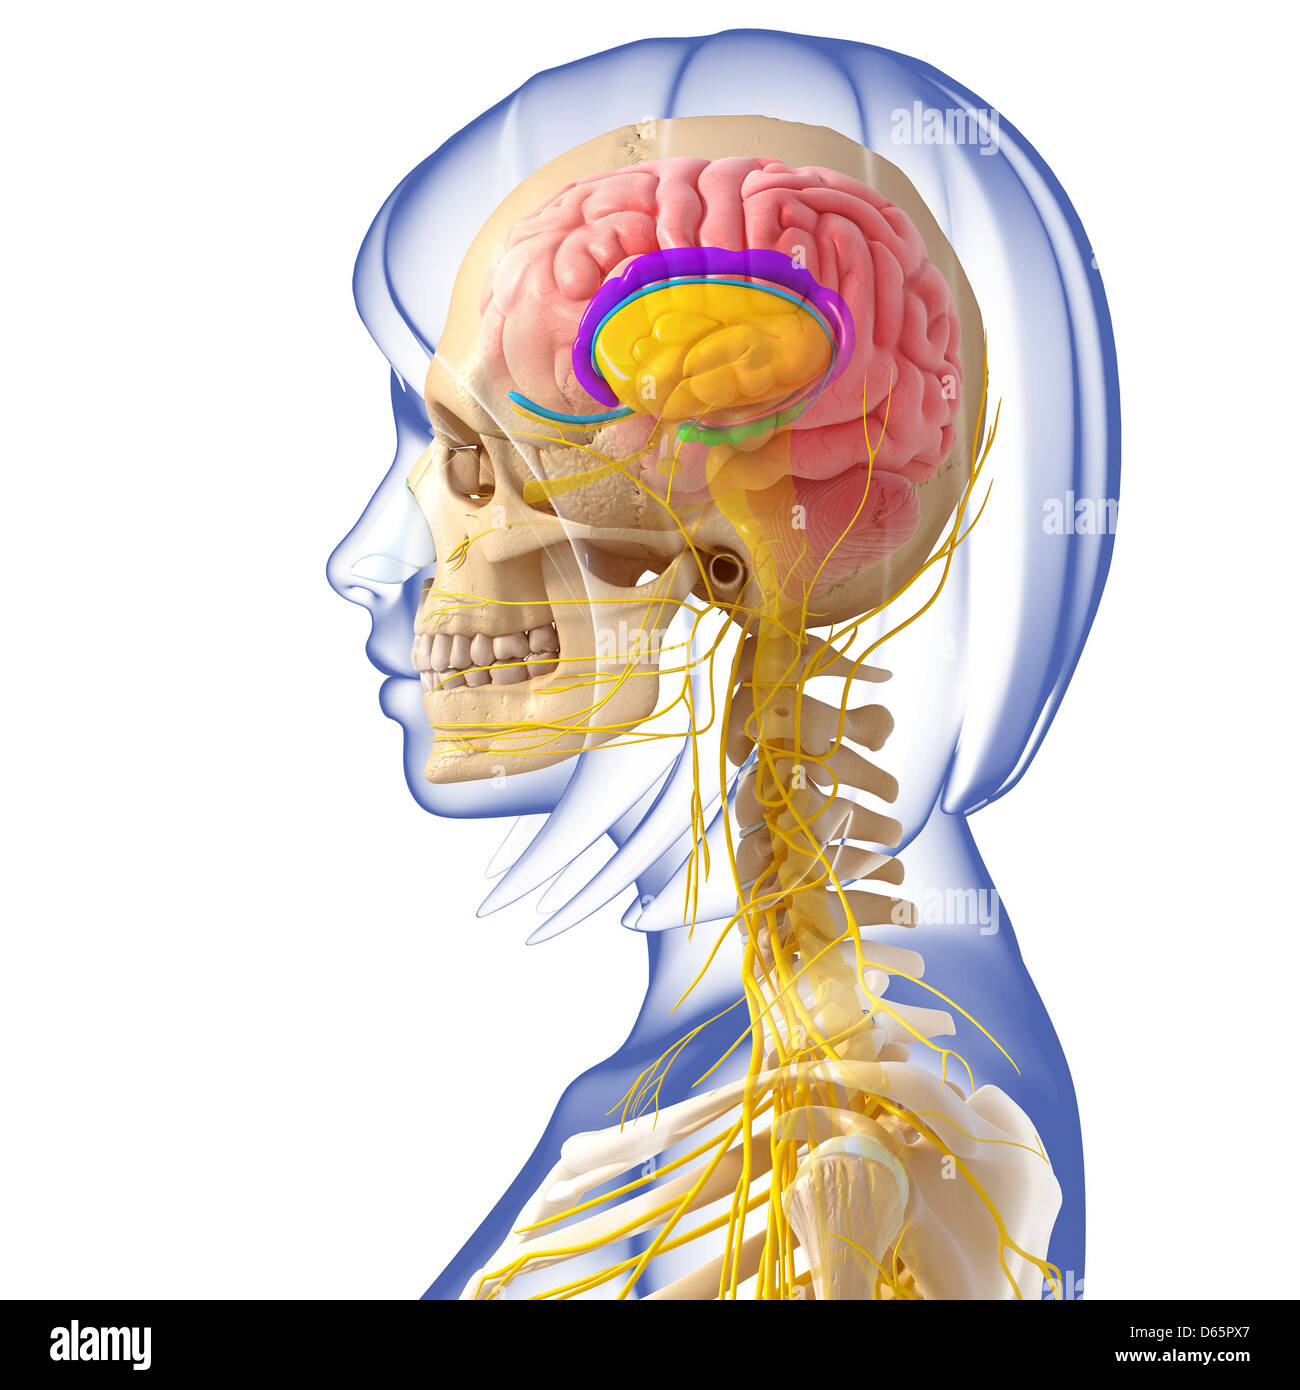 Anatomy Human Brain Side View Stock Photos Anatomy Human Brain